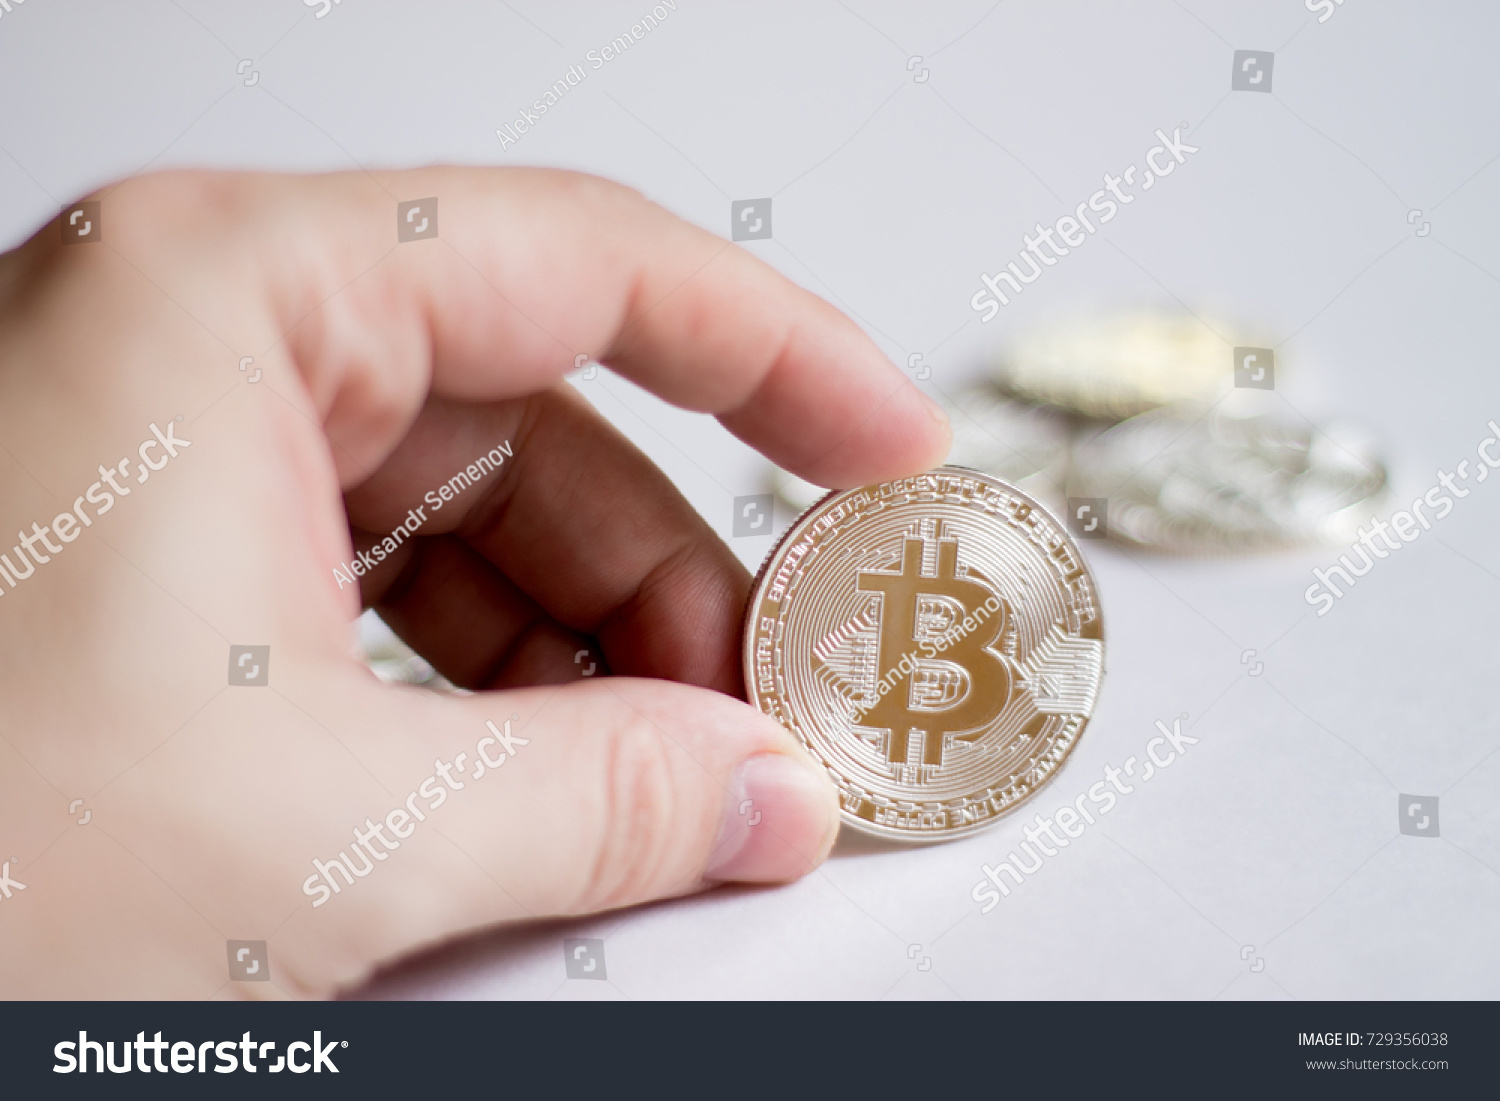 Bitcoins In The Hand A Concept From Coins Of Cryptocurrency On Light Background